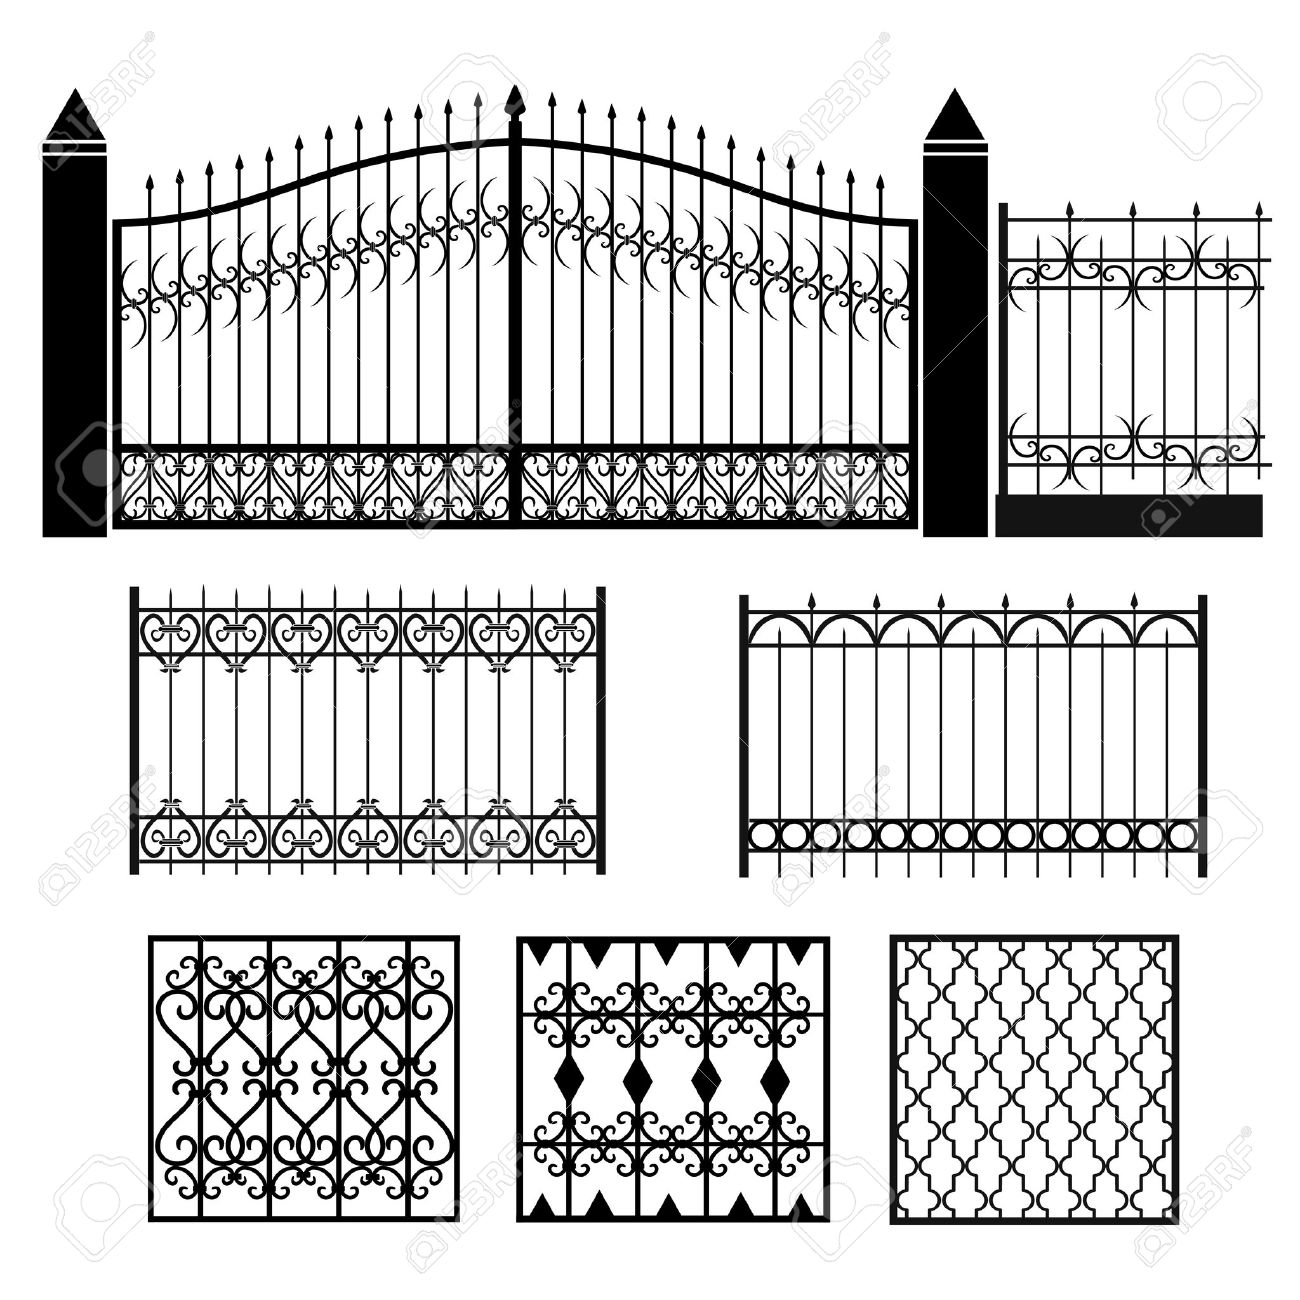 Metal Wrought Iron Gates Grilles Fences Royalty Free Cliparts